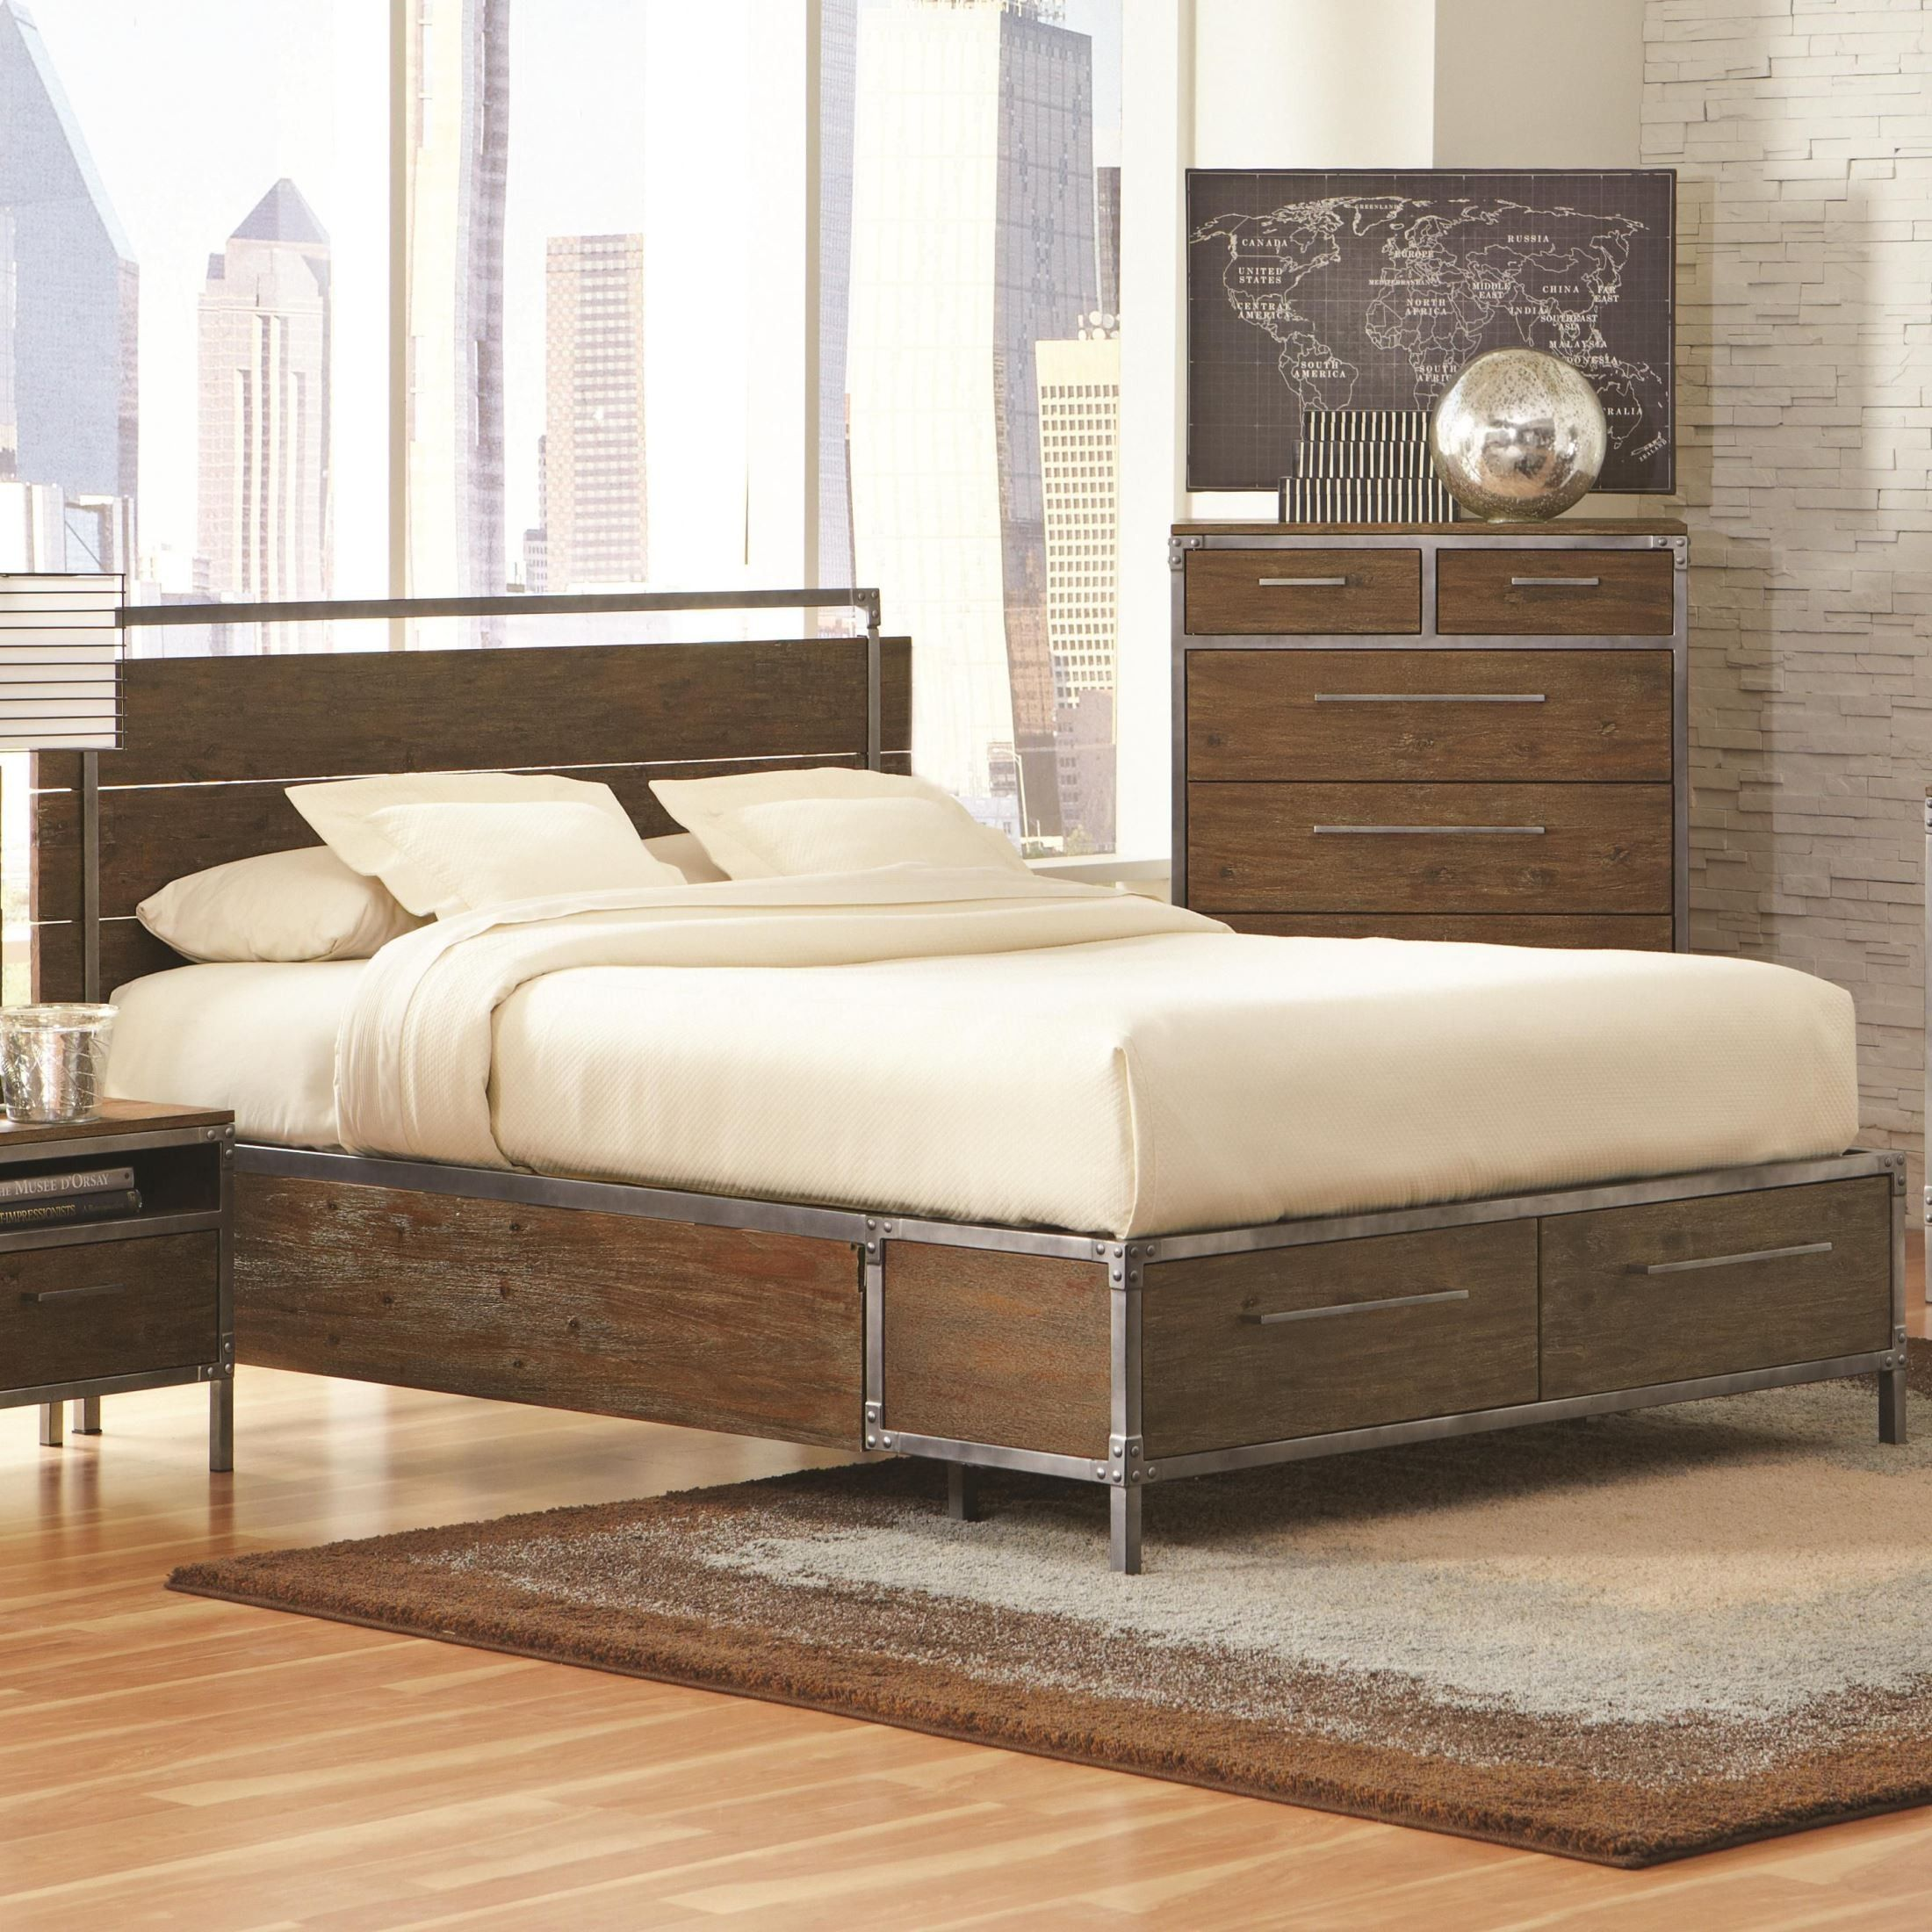 This edgy industrial bed will be a great focal point for your